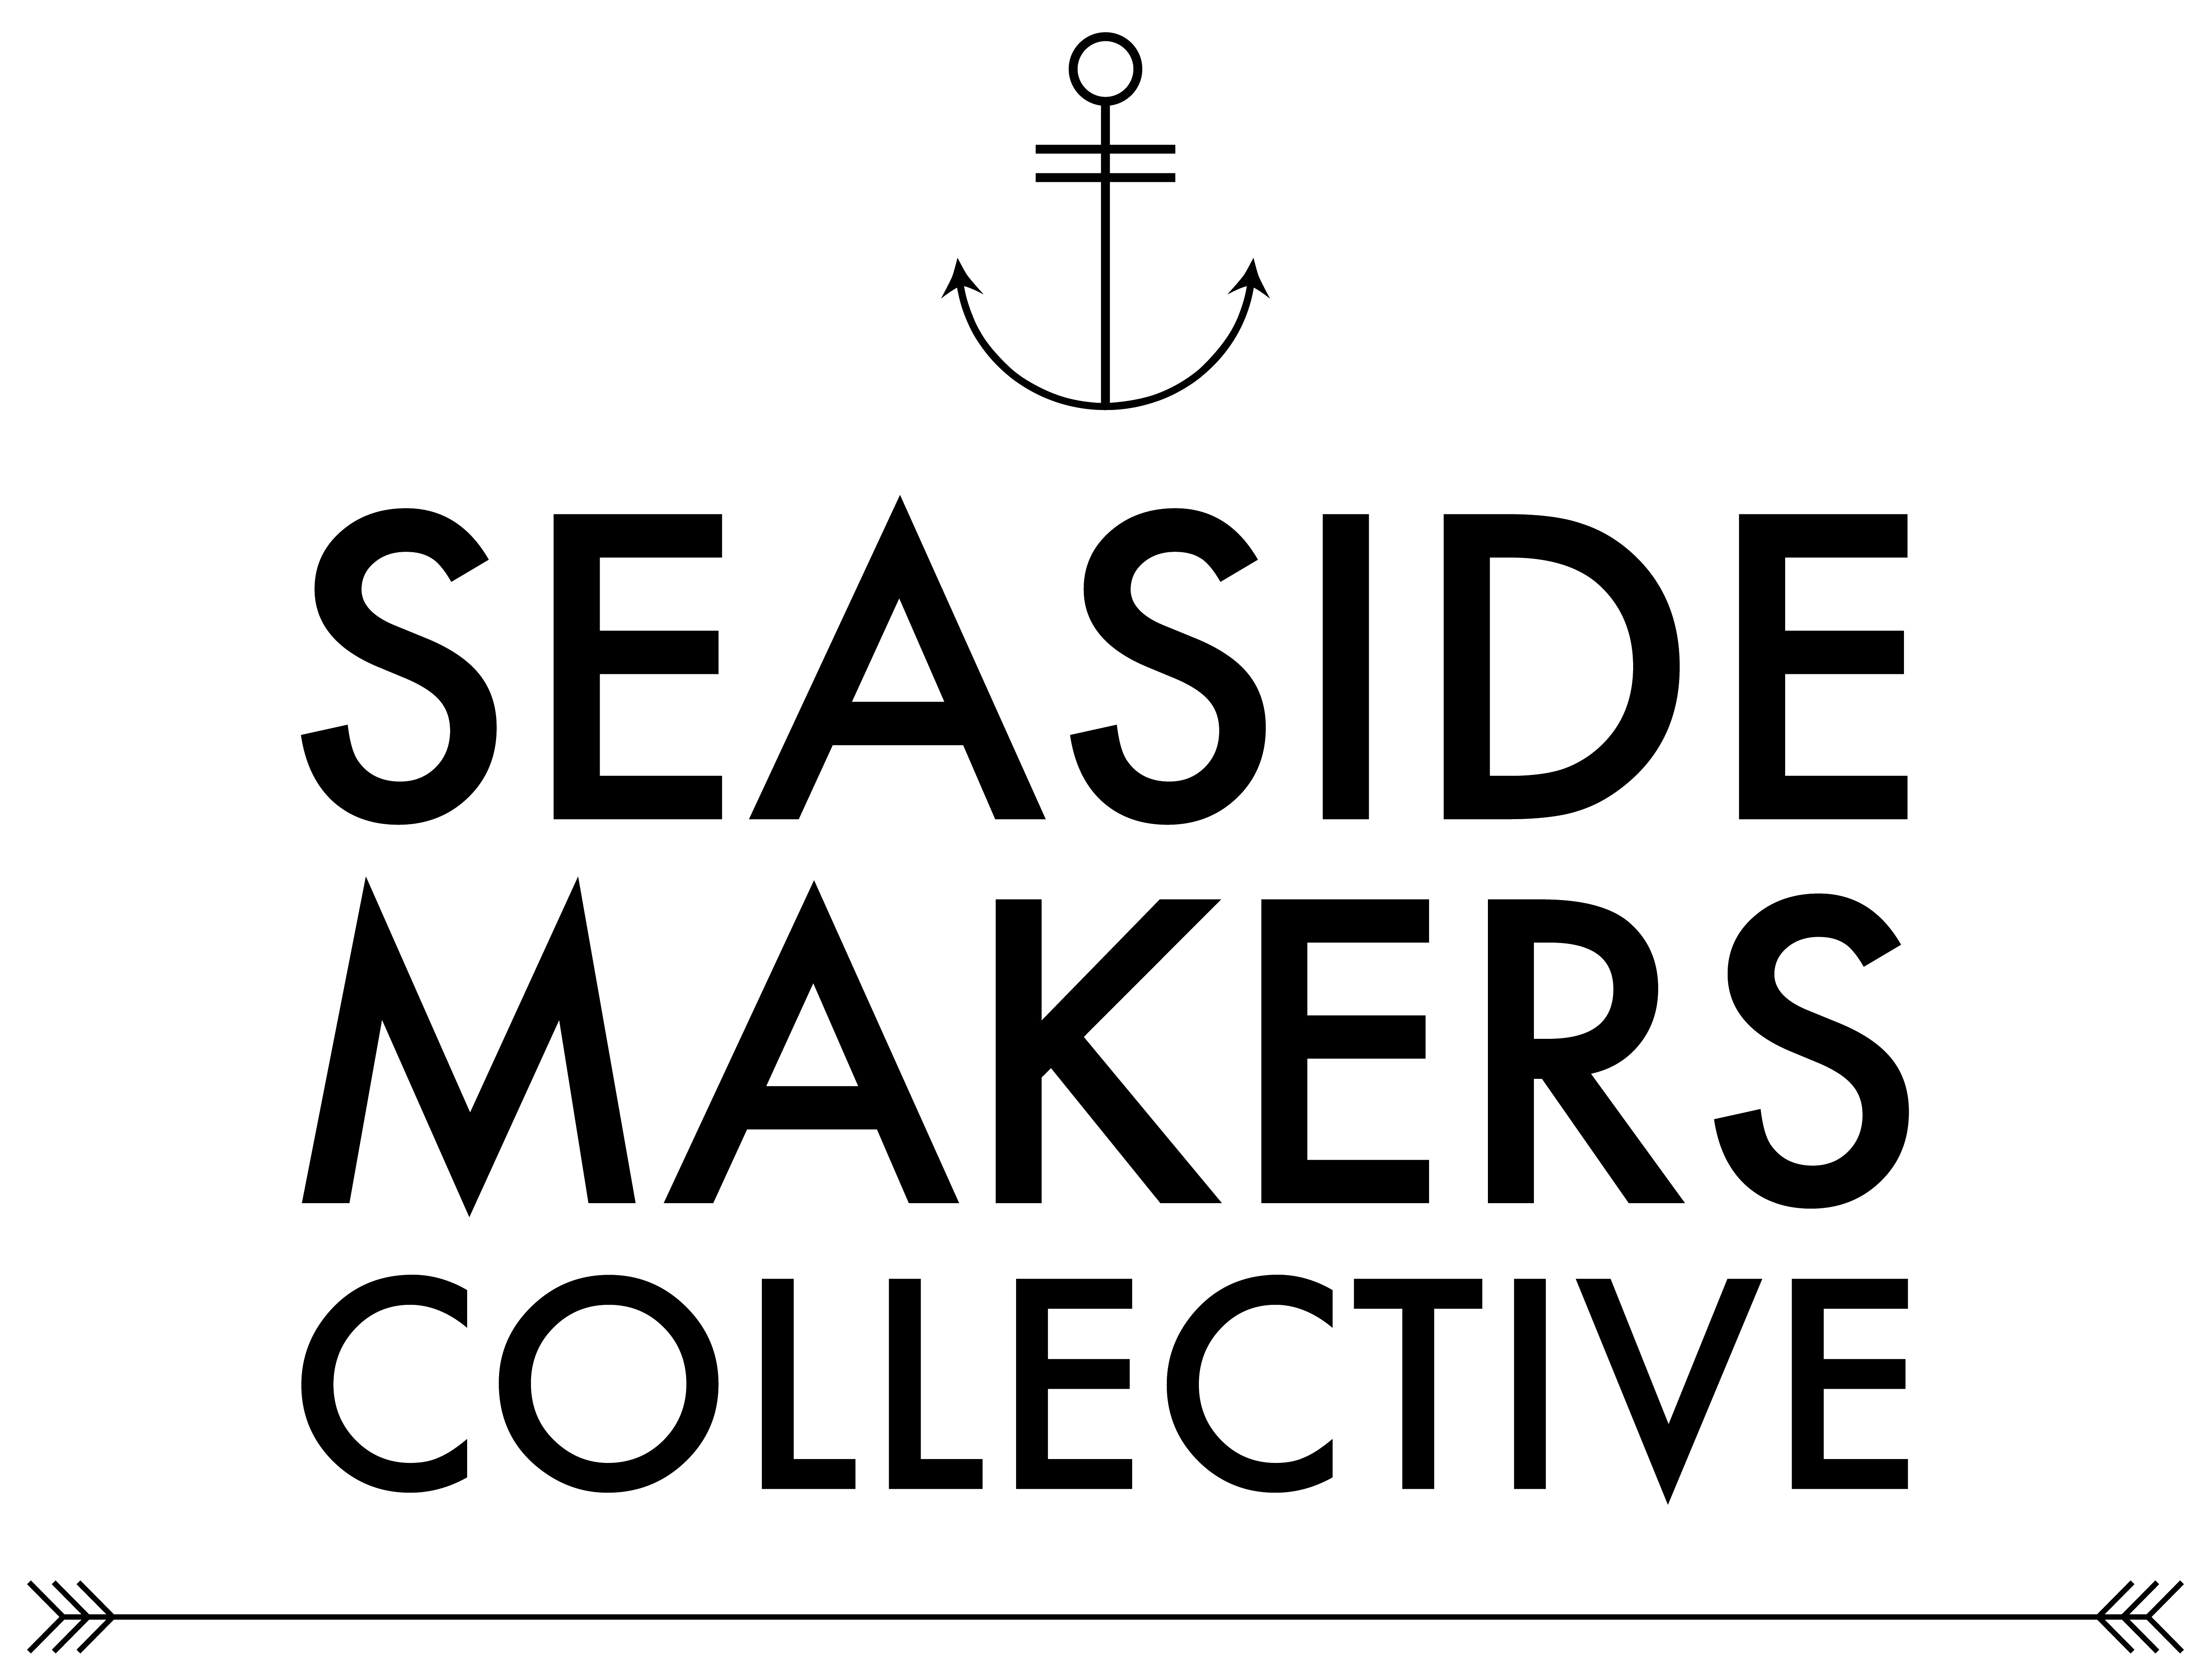 seaside-makers-logo-white-background-01.jpg